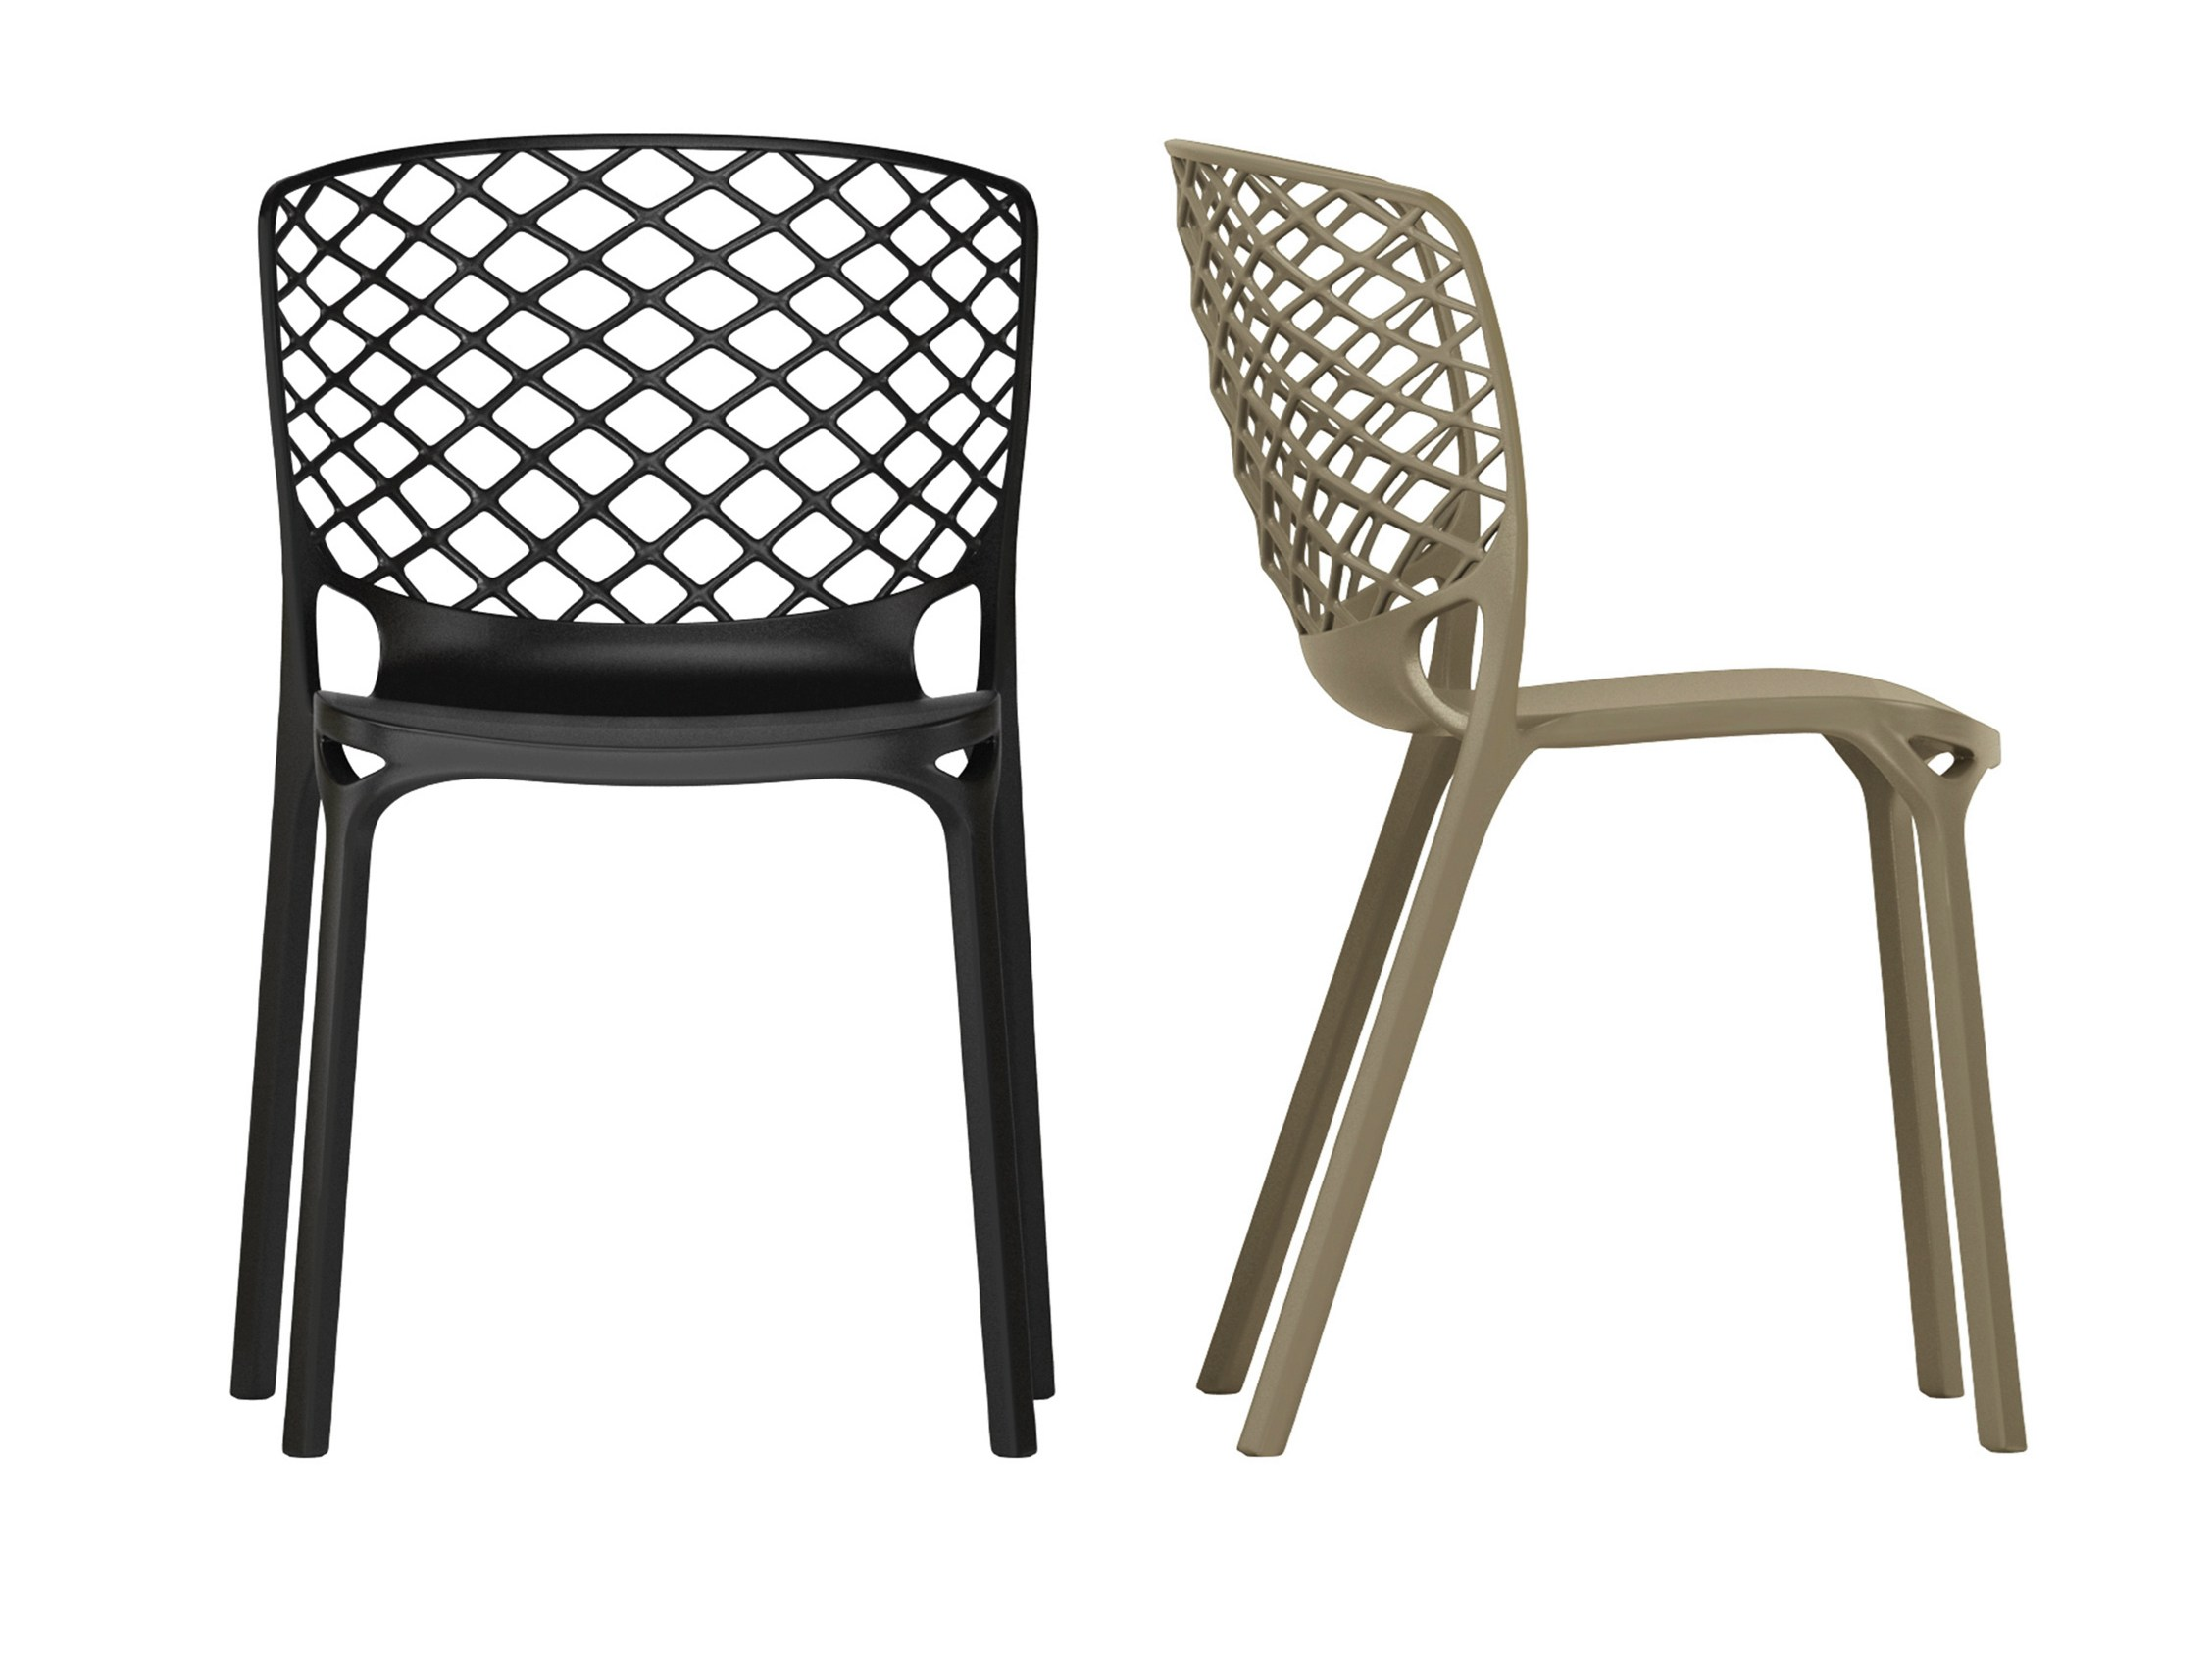 chaise empilable gamera by calligaris design archirivolto. Black Bedroom Furniture Sets. Home Design Ideas